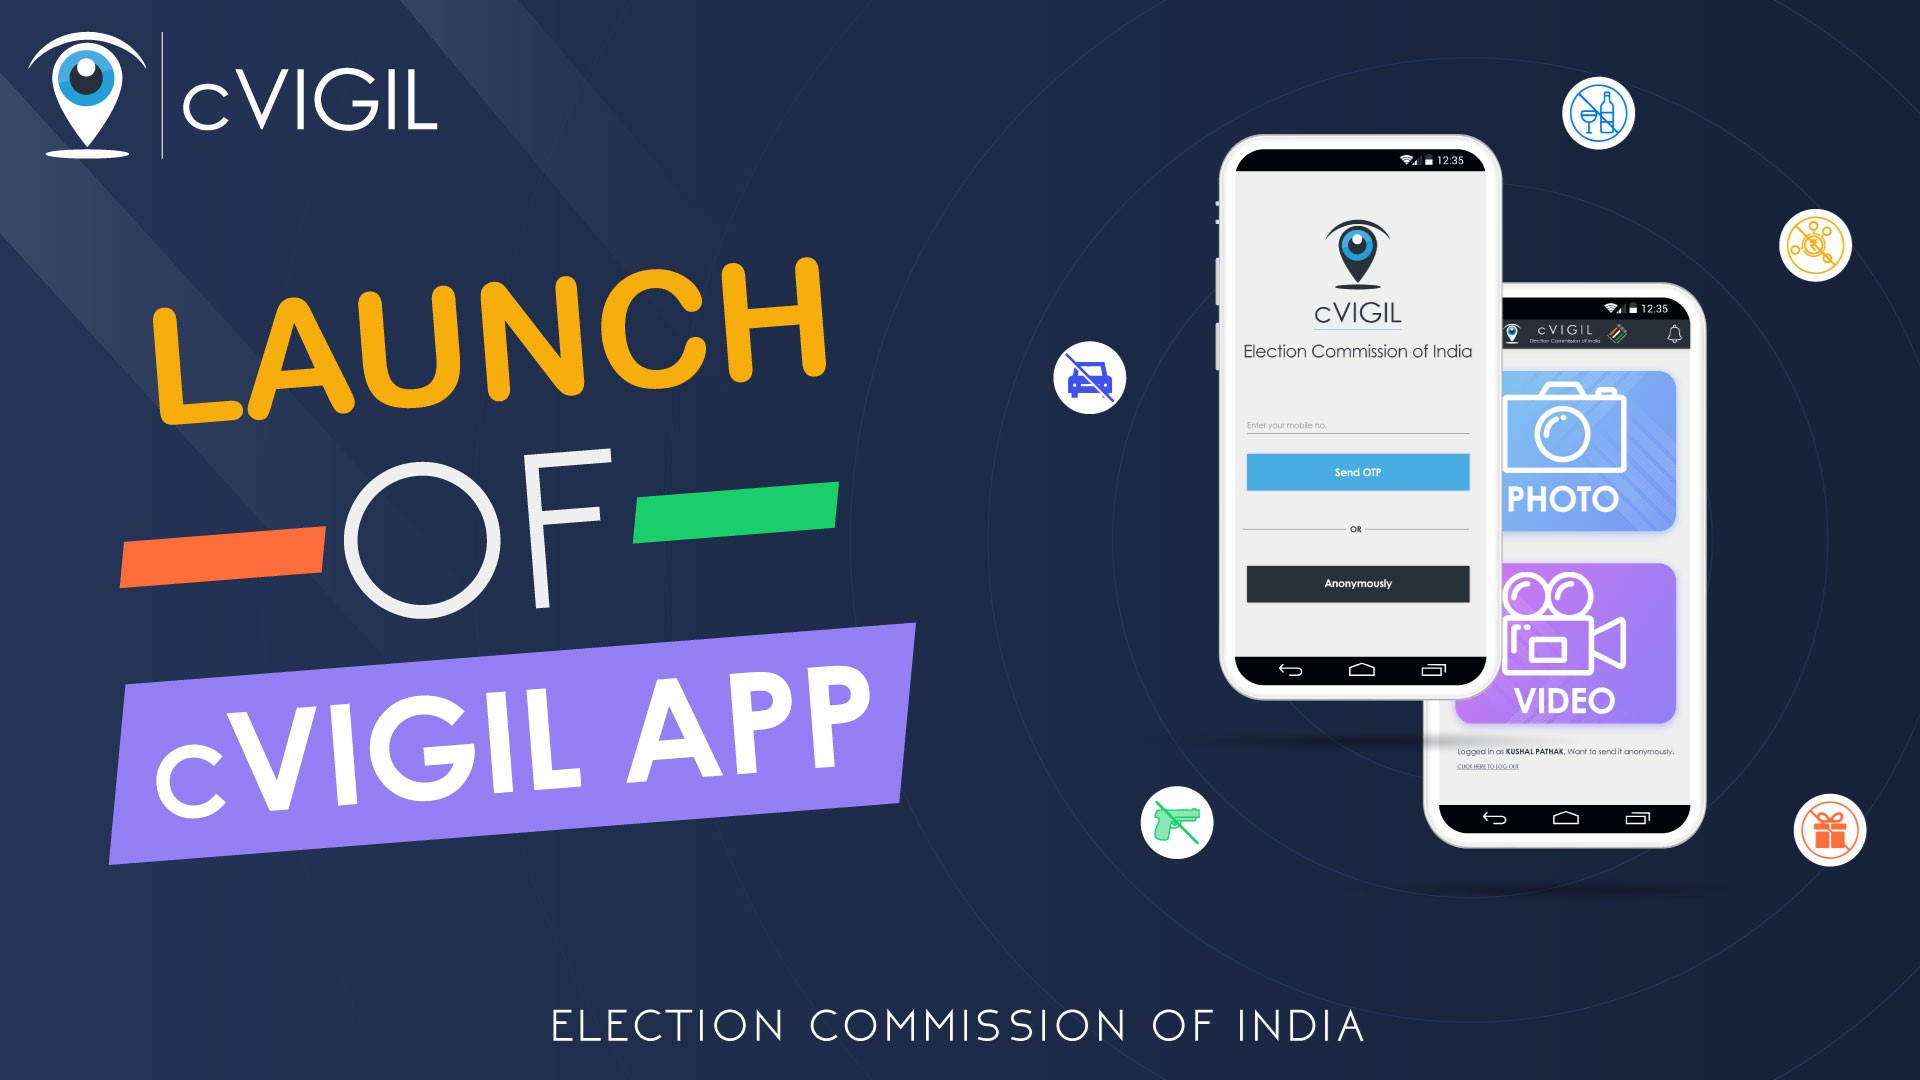 ELECTION COMMISSION OF INDIA LAUNCHES CVIGIL APP